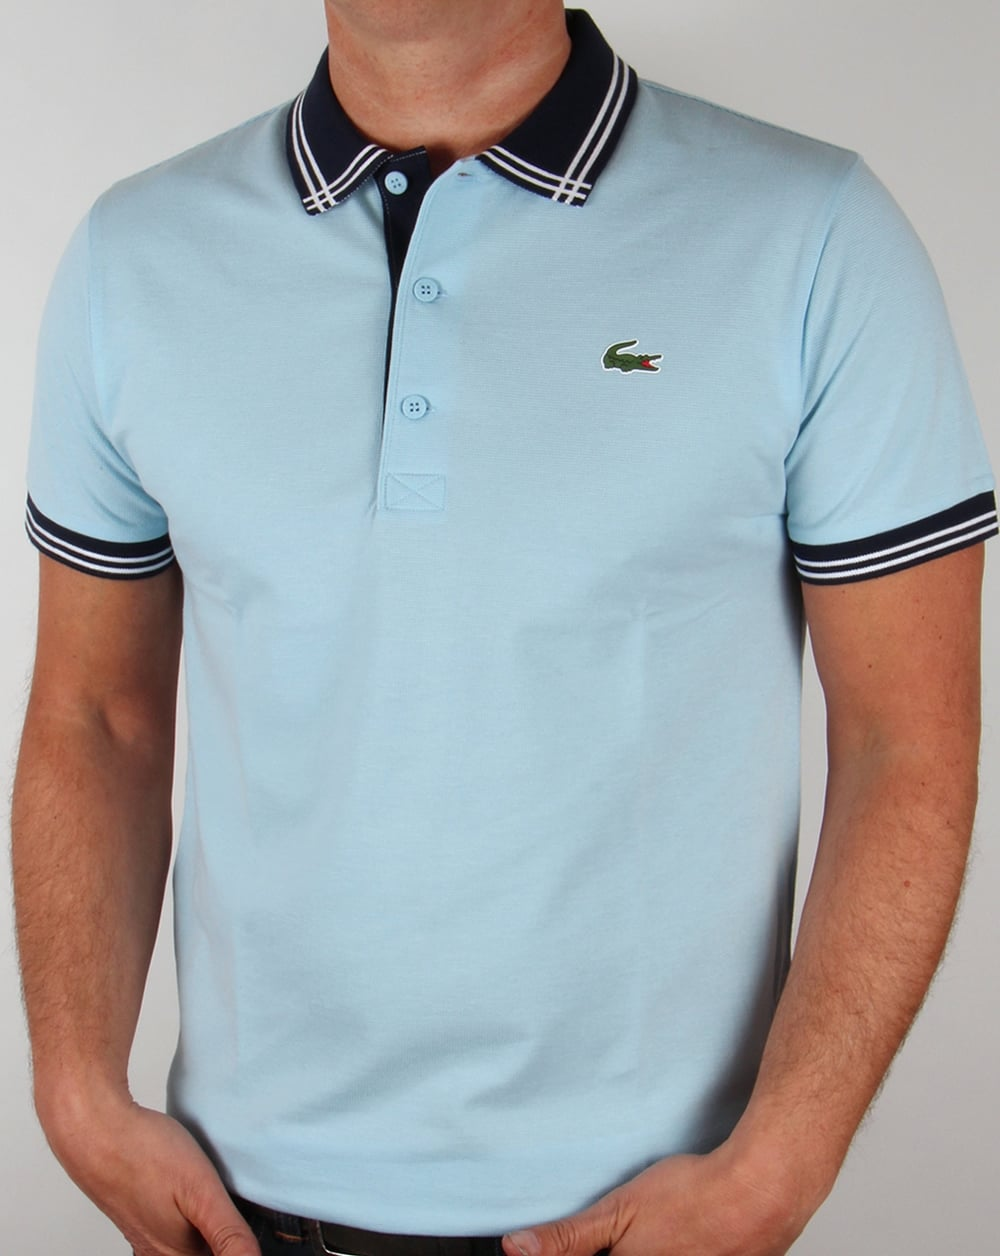 lacoste piping collar golf polo shirt sky blue navy mens